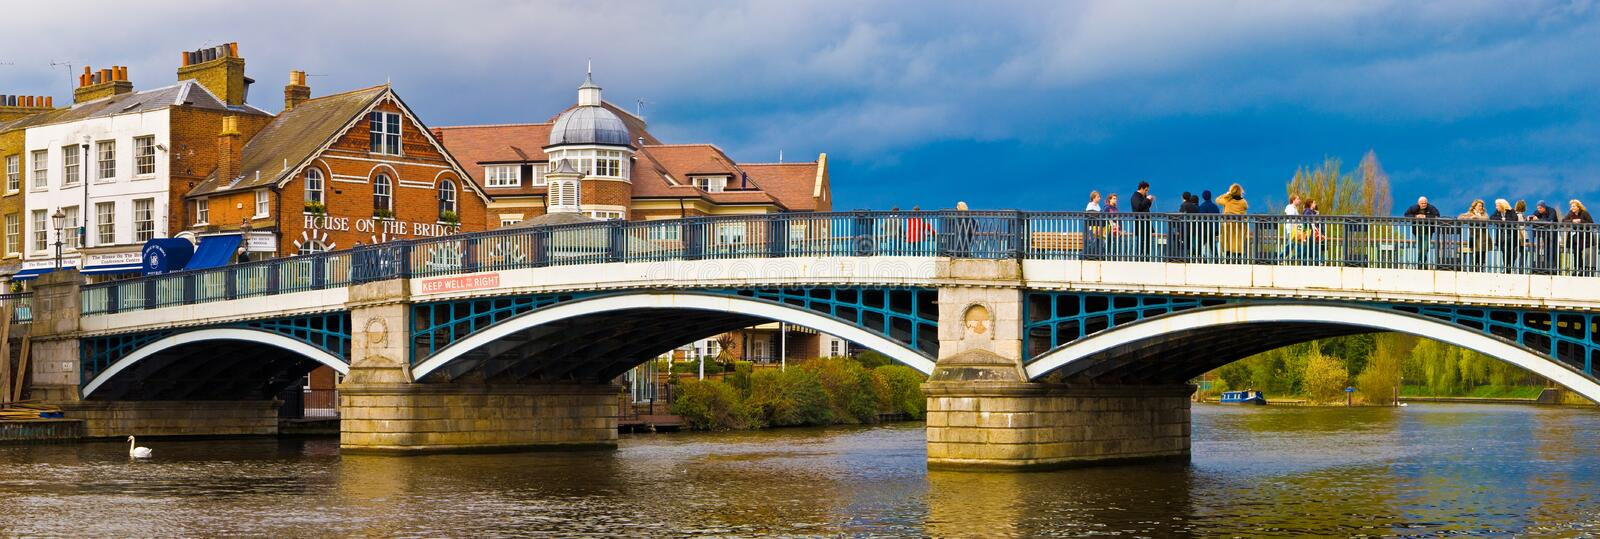 Thames bridge Windsor